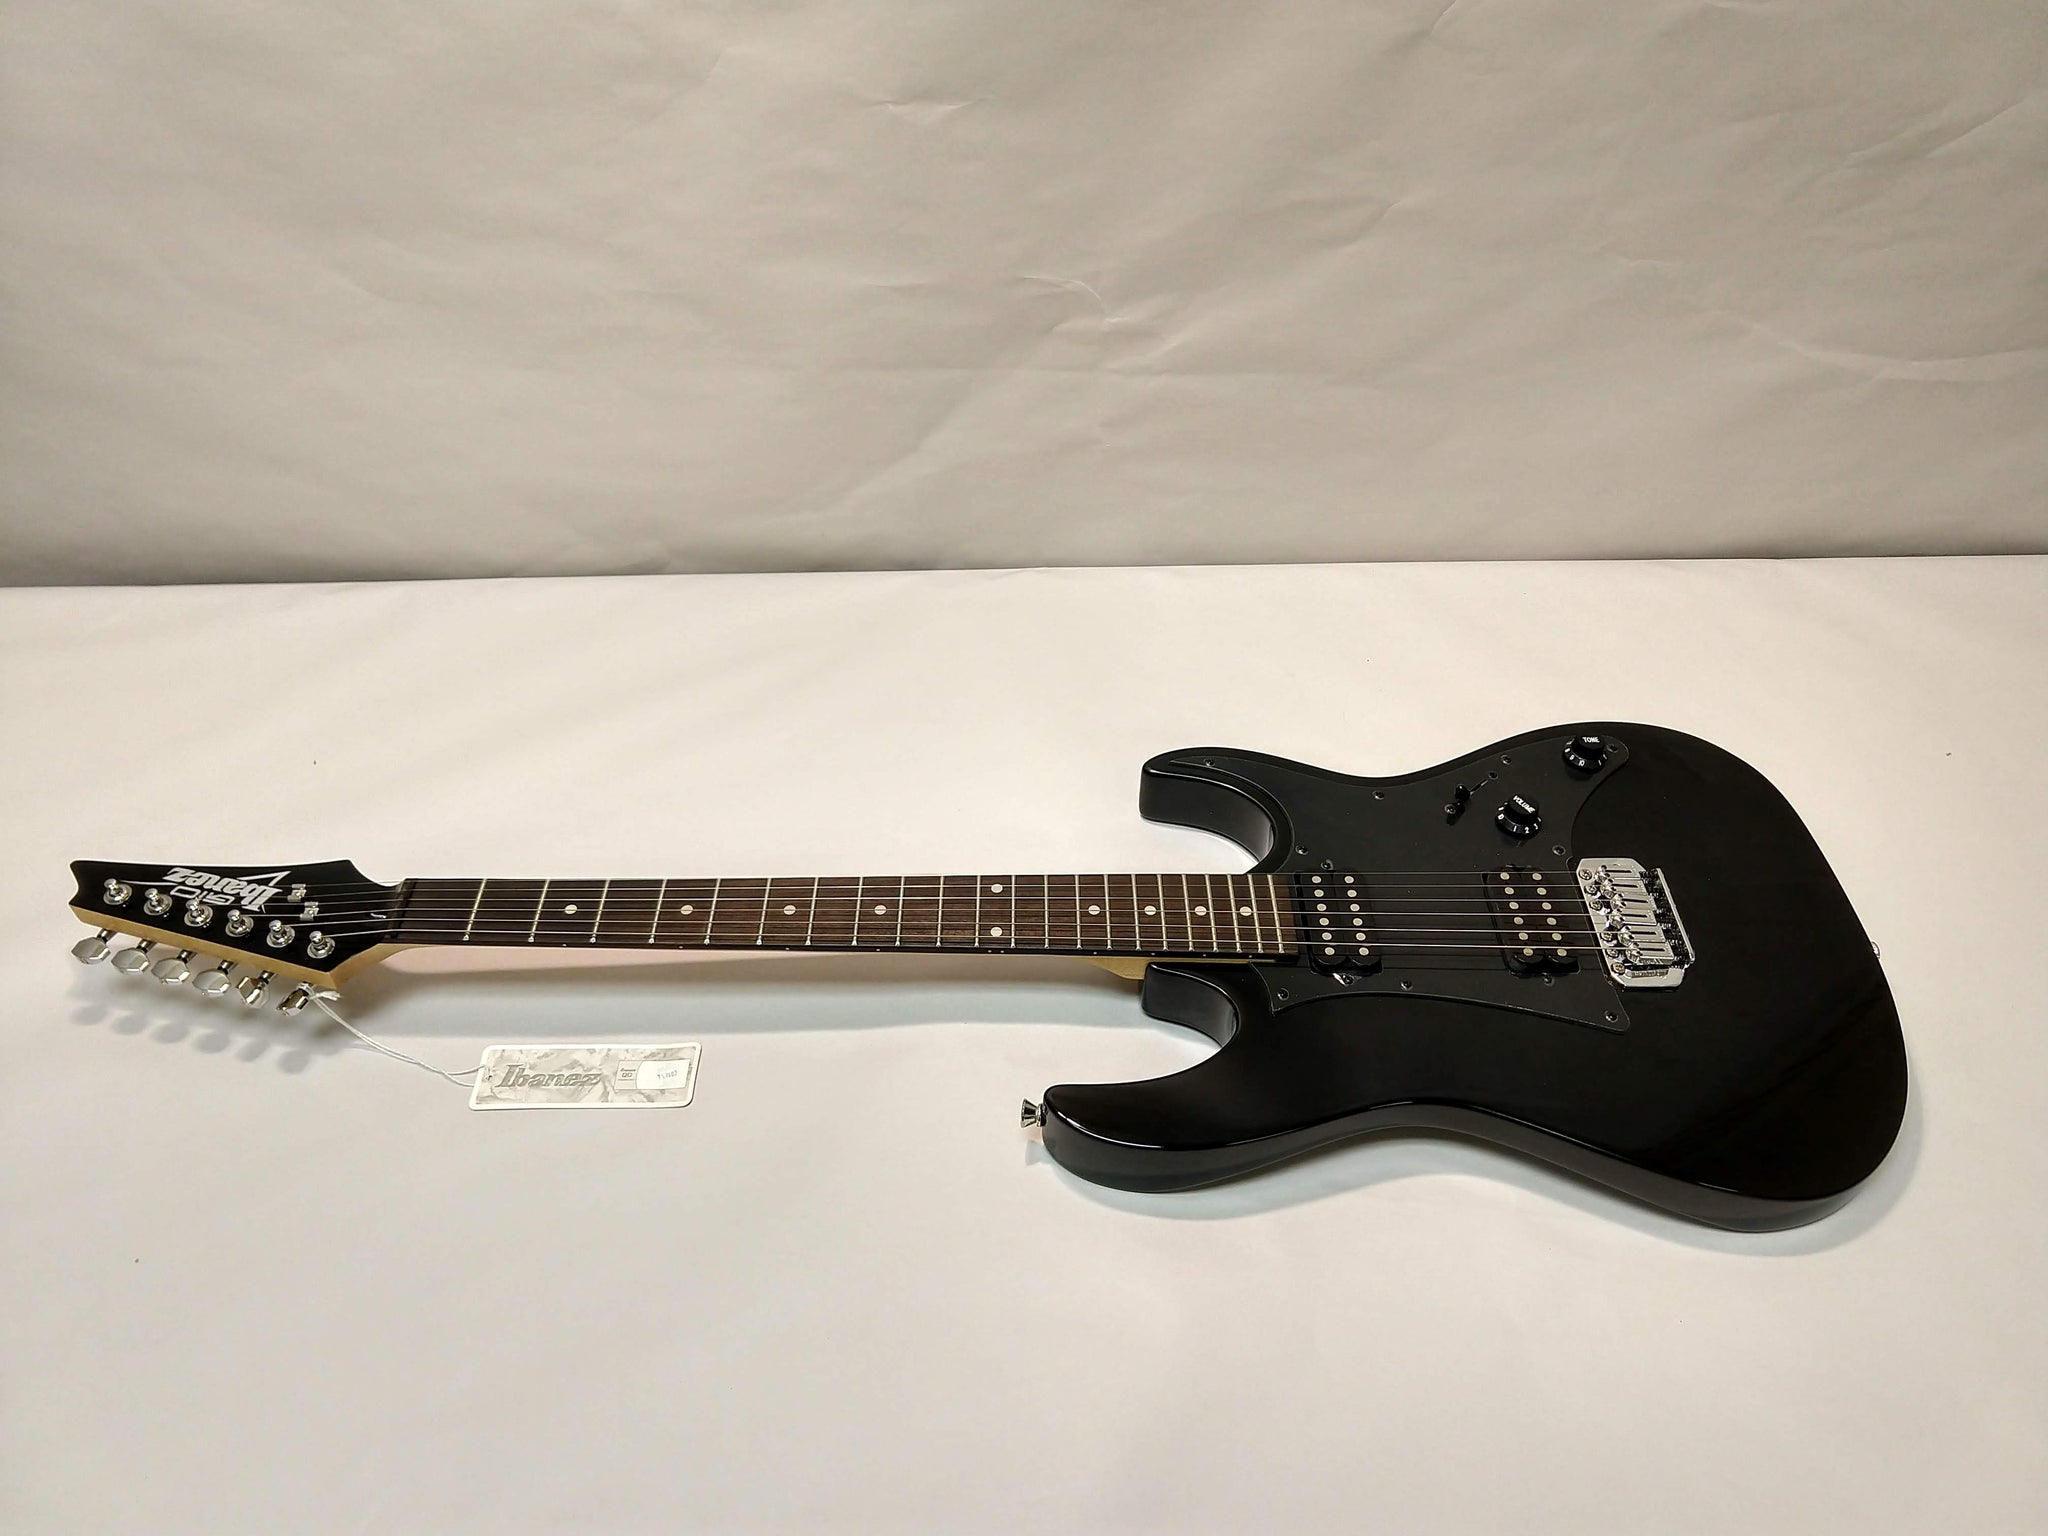 NEW Ibanez GRX20Z-BKN Electric Guitar Black Night